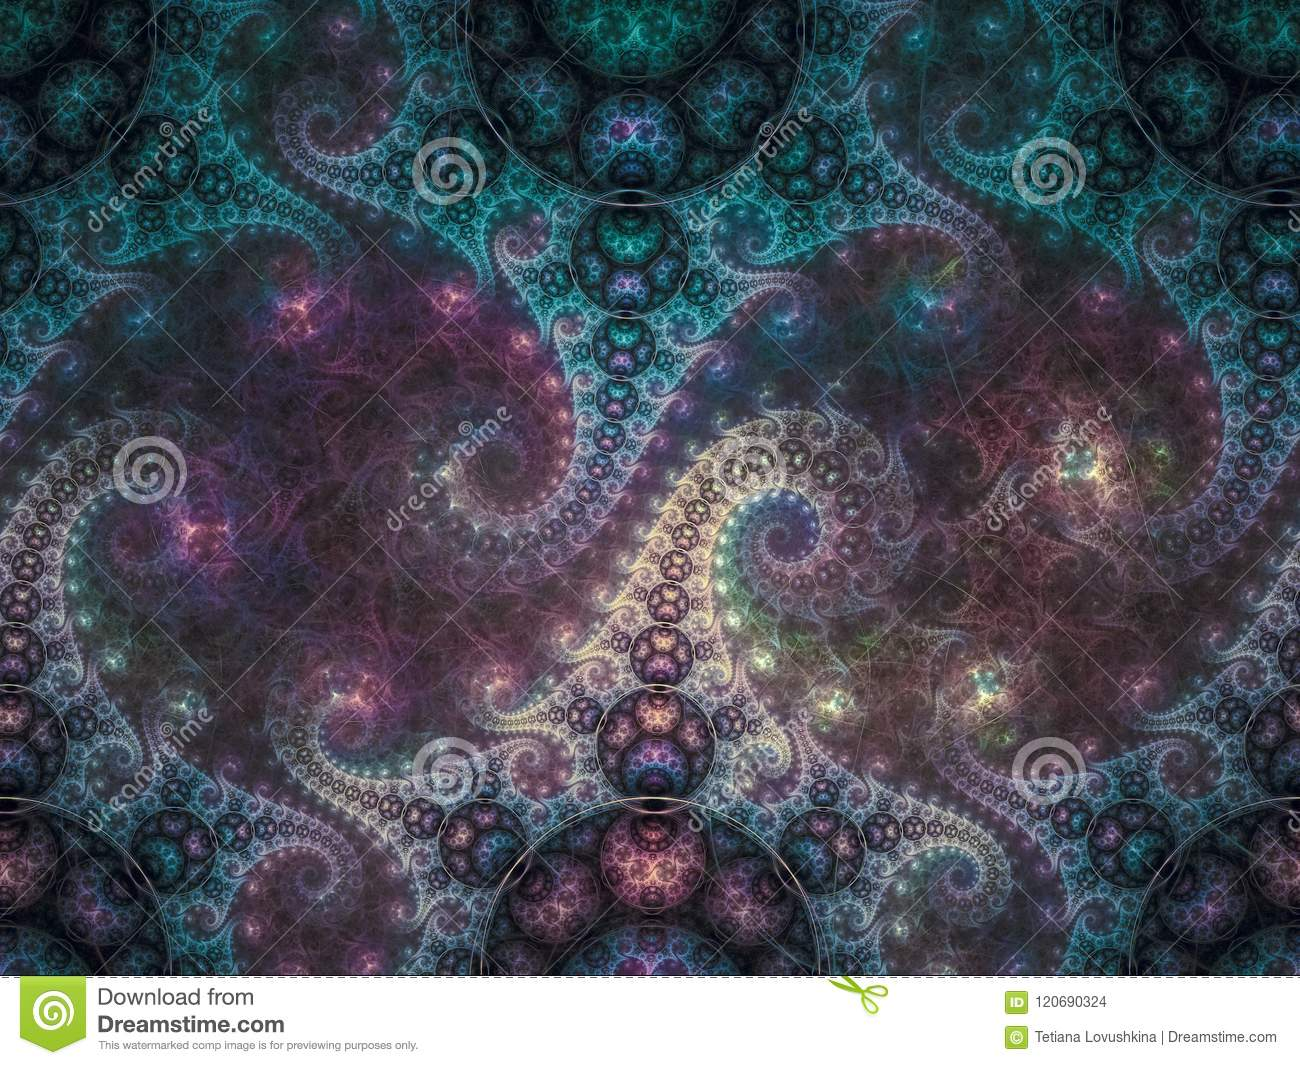 Fractal abstract unique colorful pattern digital dream modern creative background idea decoration magic